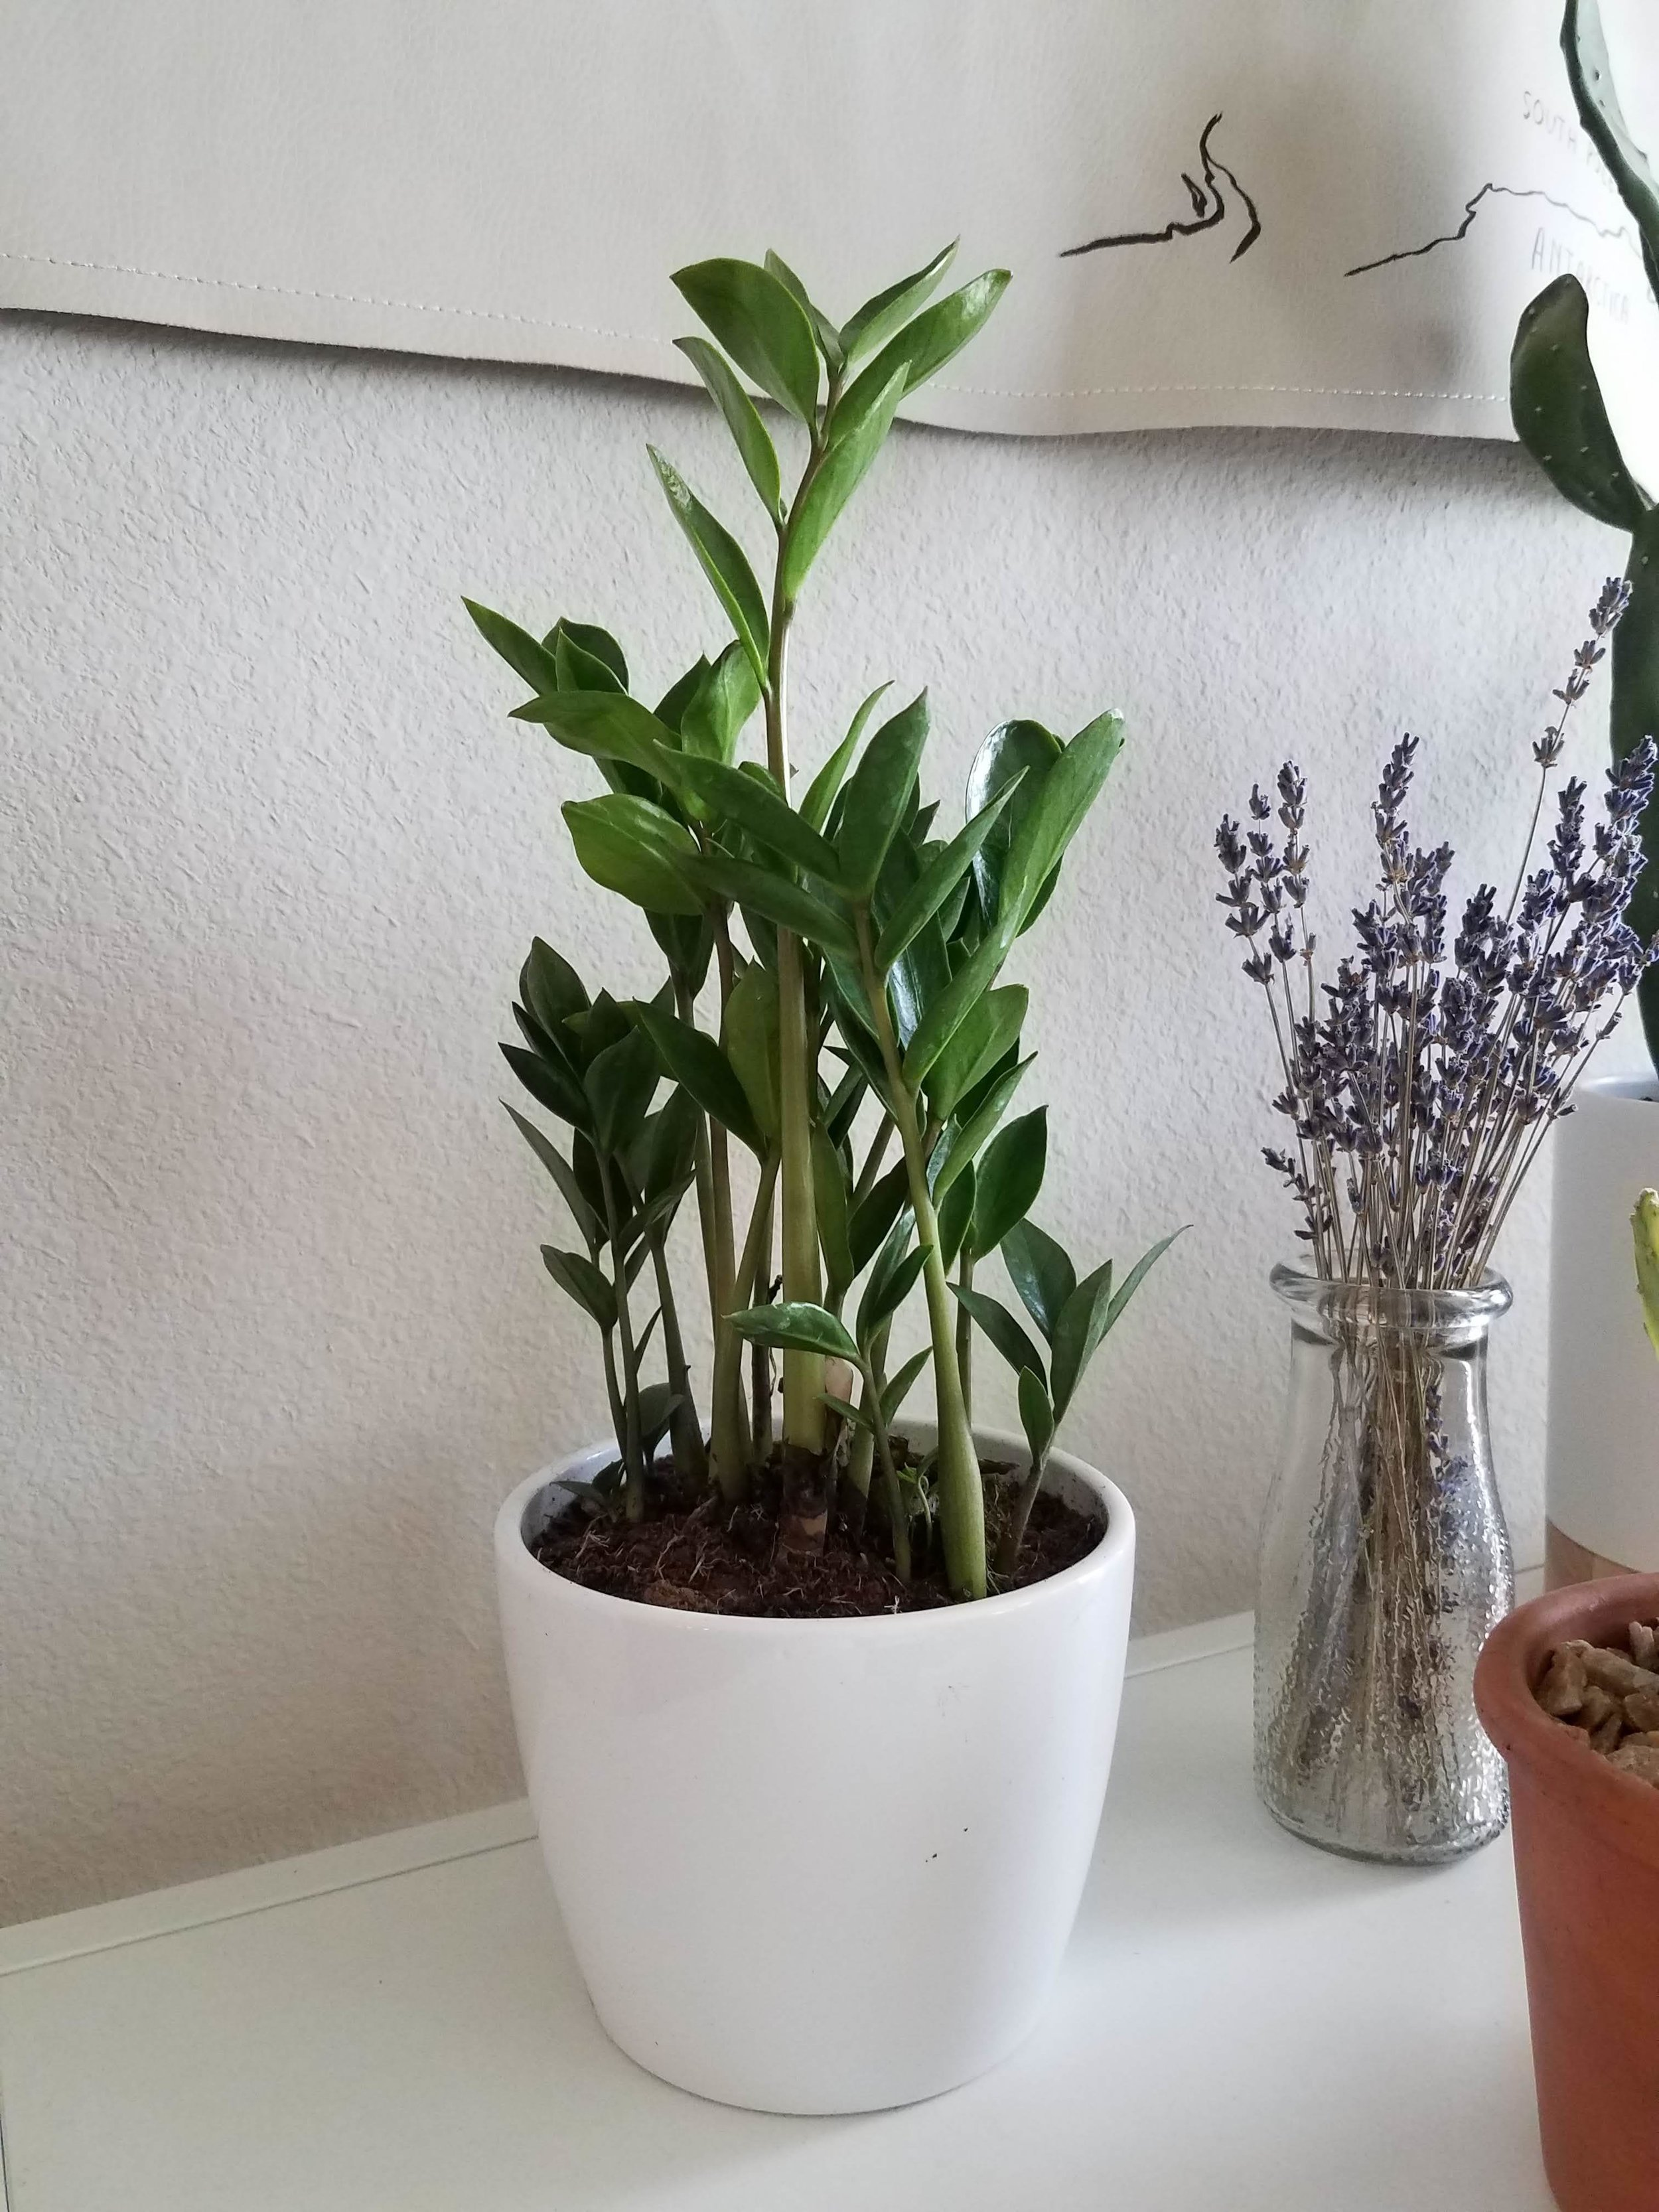 A ZZ plant to keep me company while working